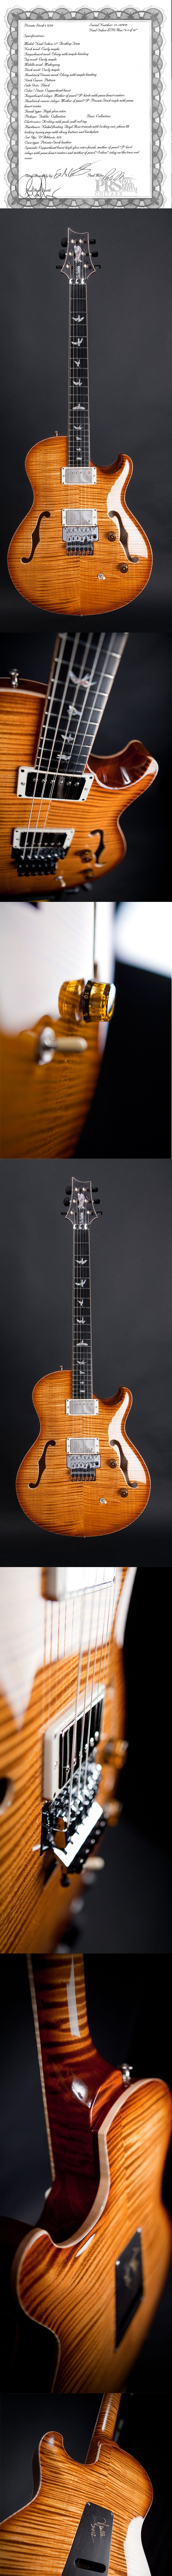 42 best guitar images on pinterest music musical instruments